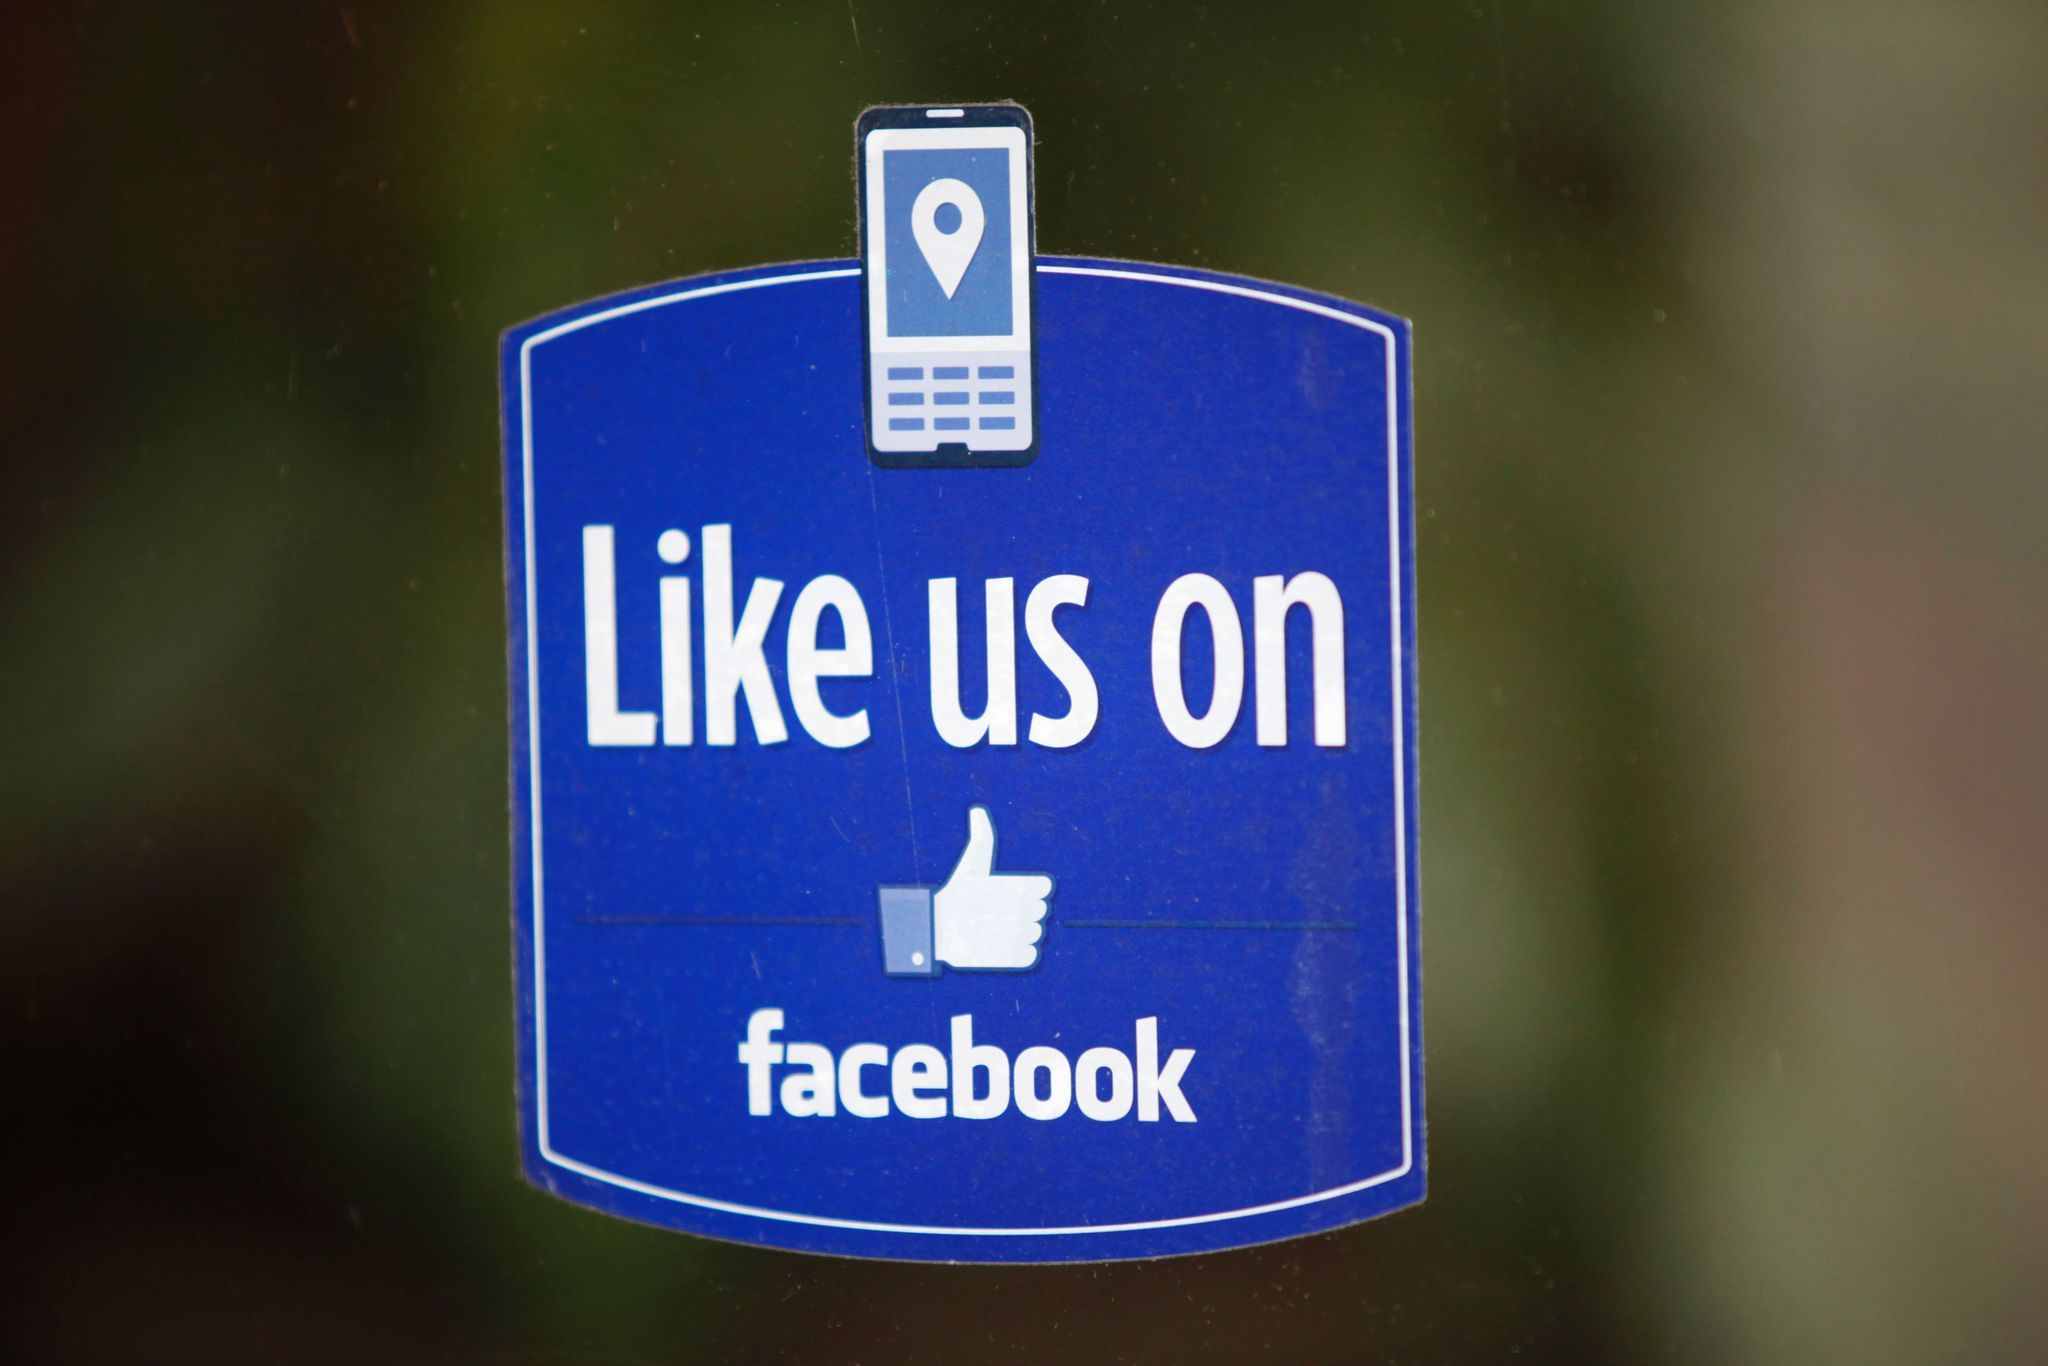 When is a Facebook 'like' a crime?